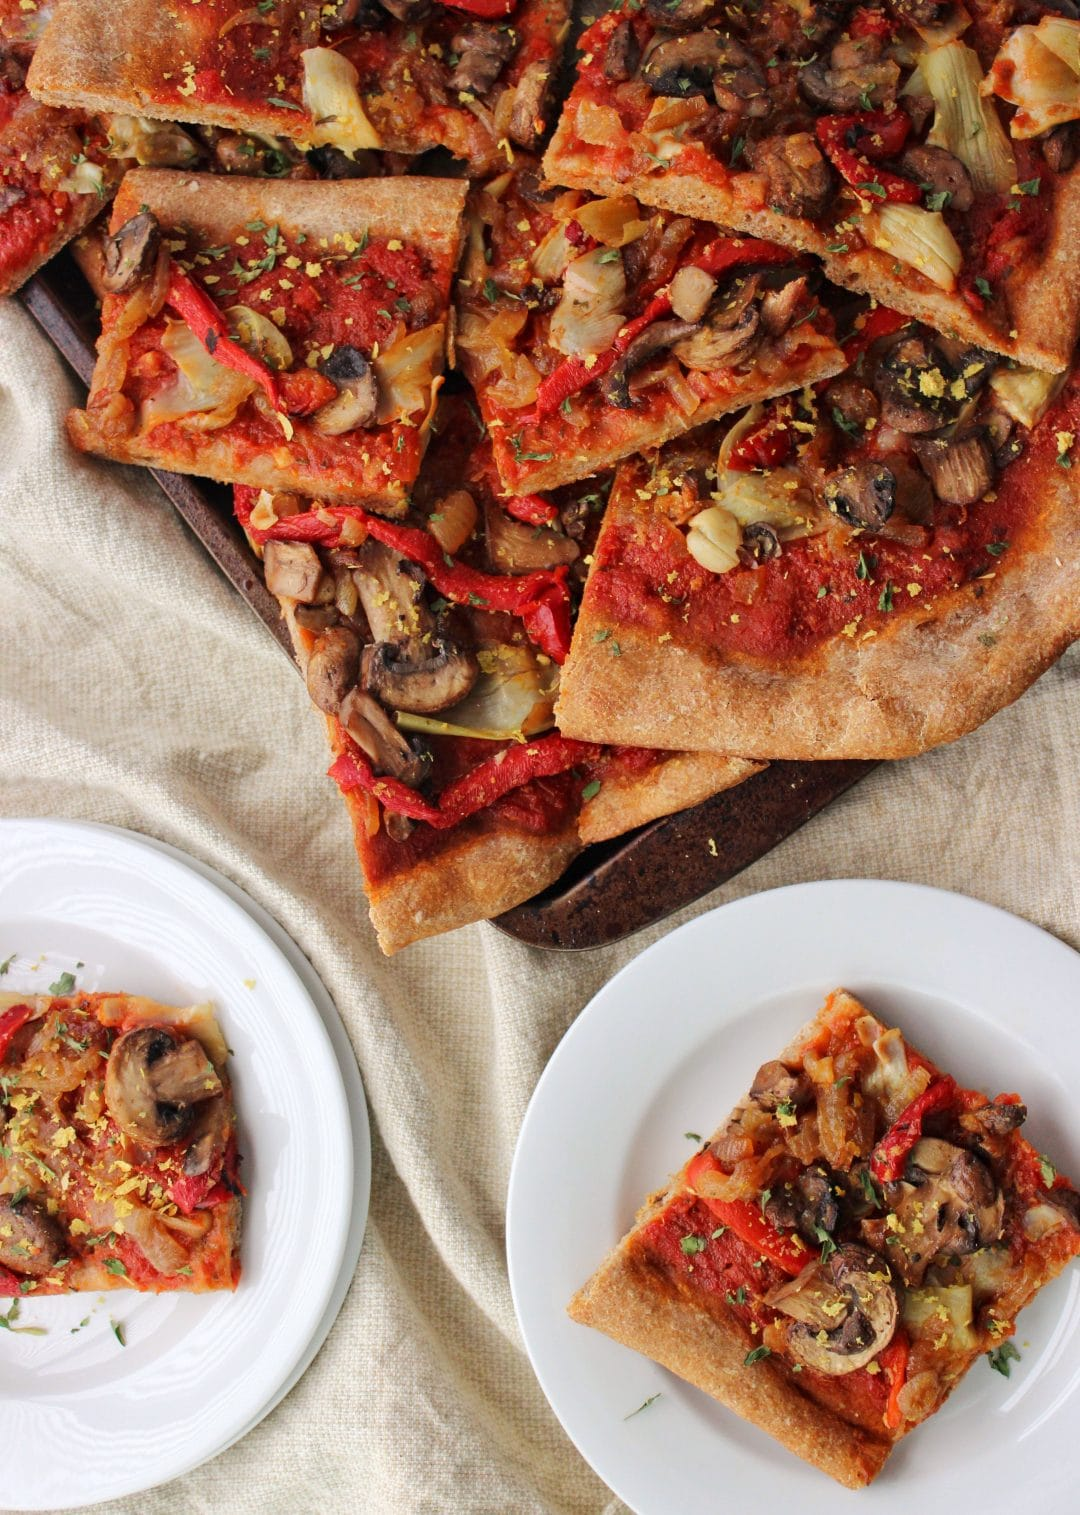 Quick Vegan Pizza - A delicious pizza recipe that anyone is sure to enjoy. Dairy free, loaded with veggies, and a pre-made crust. simplylakita.com #vegan #pizza